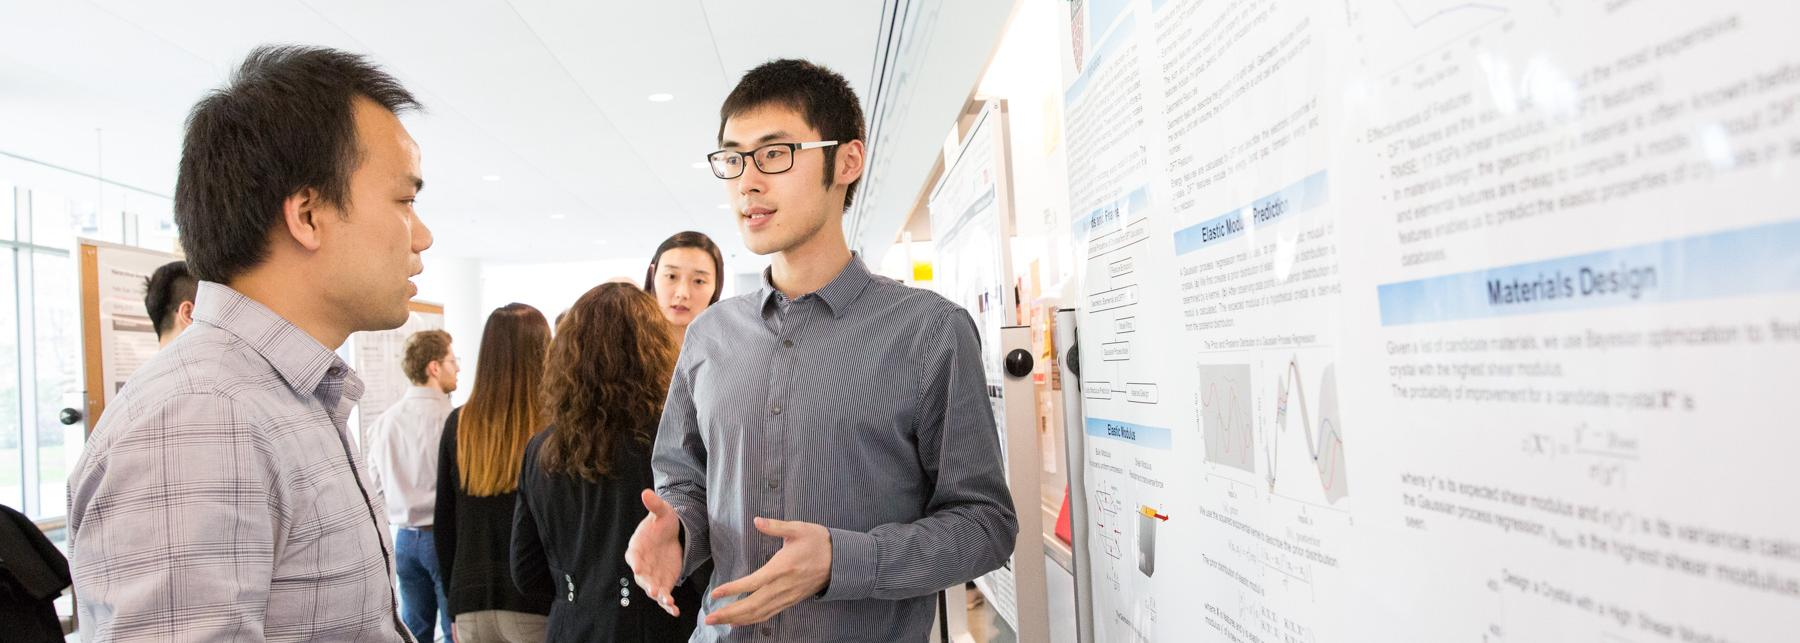 Scientific poster presentation